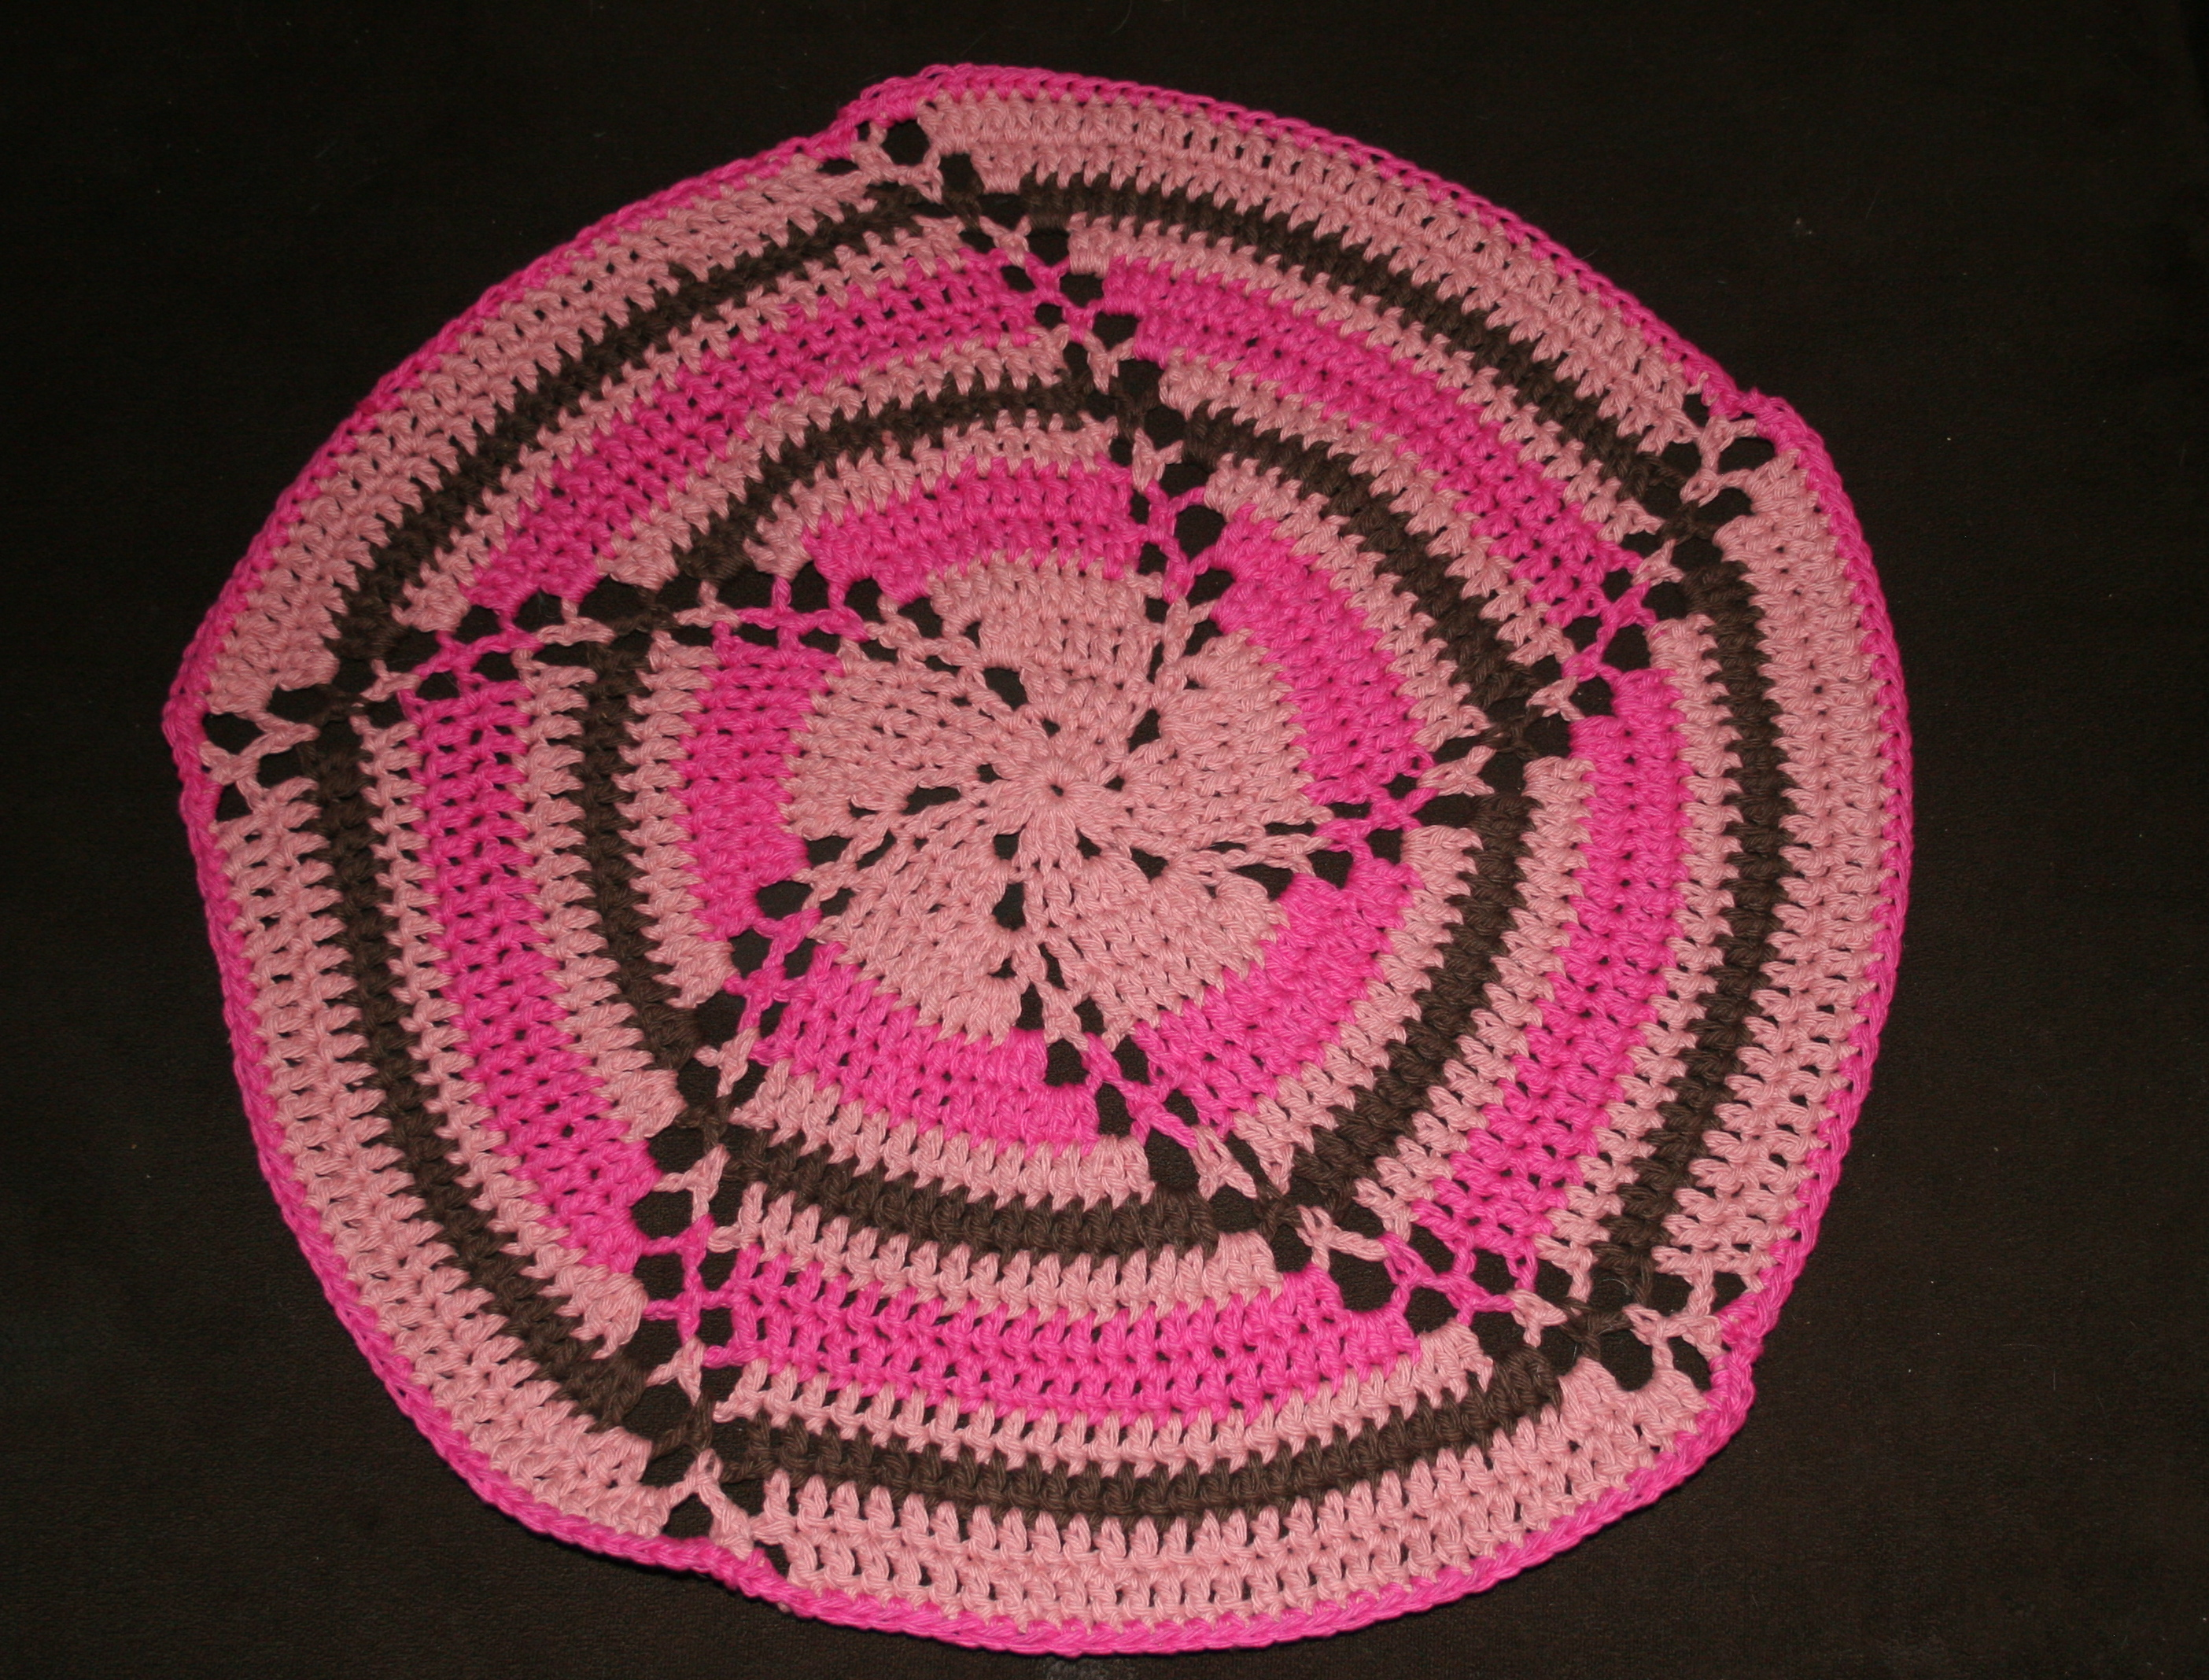 Crochet Baby Blanket Circular Pattern : Clever Ribbon Crochet Baby Blanket - Circle Pattern ...